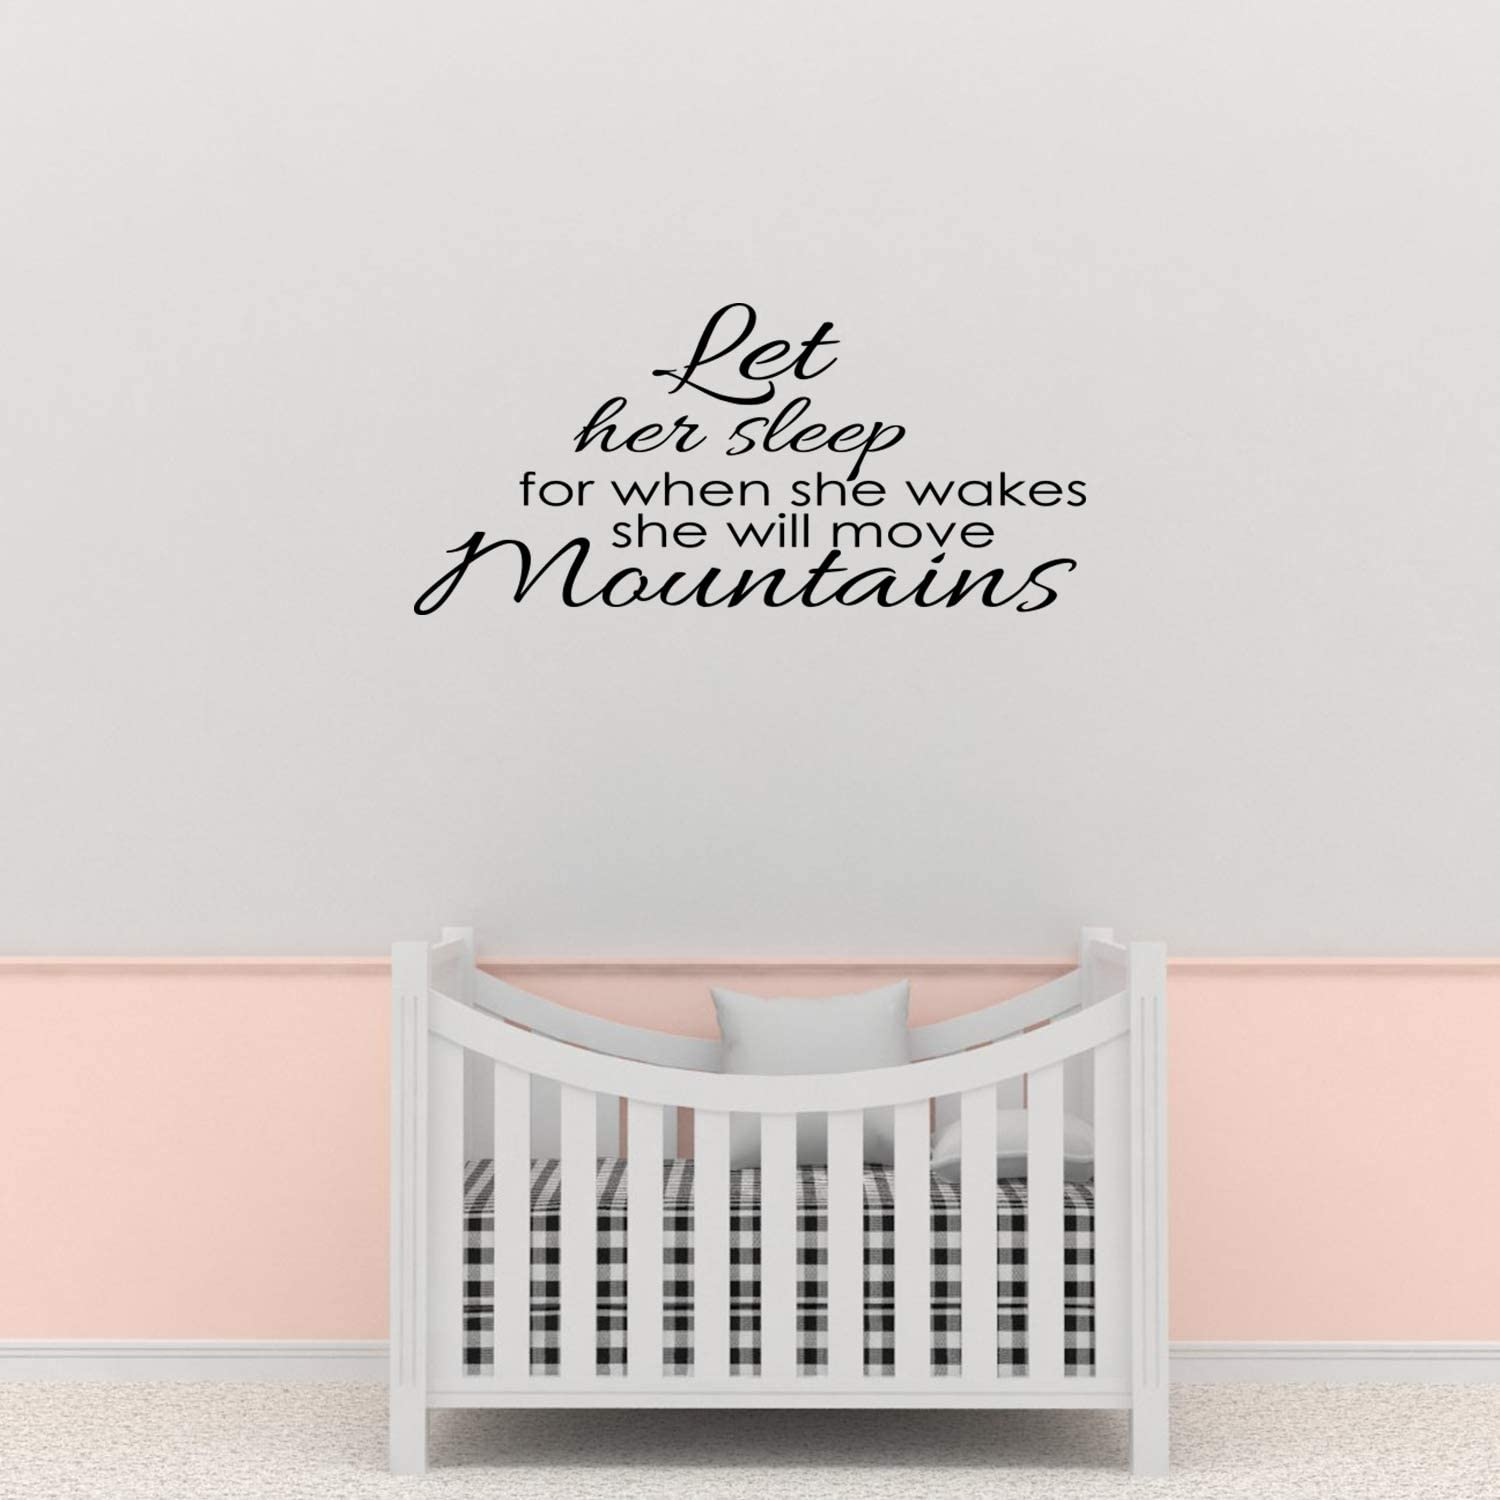 Empresal Wall Decal Quote Let Her Sleep for When She Wakes She Will Move Mountains Vinyl Sticker Bedroom Decor